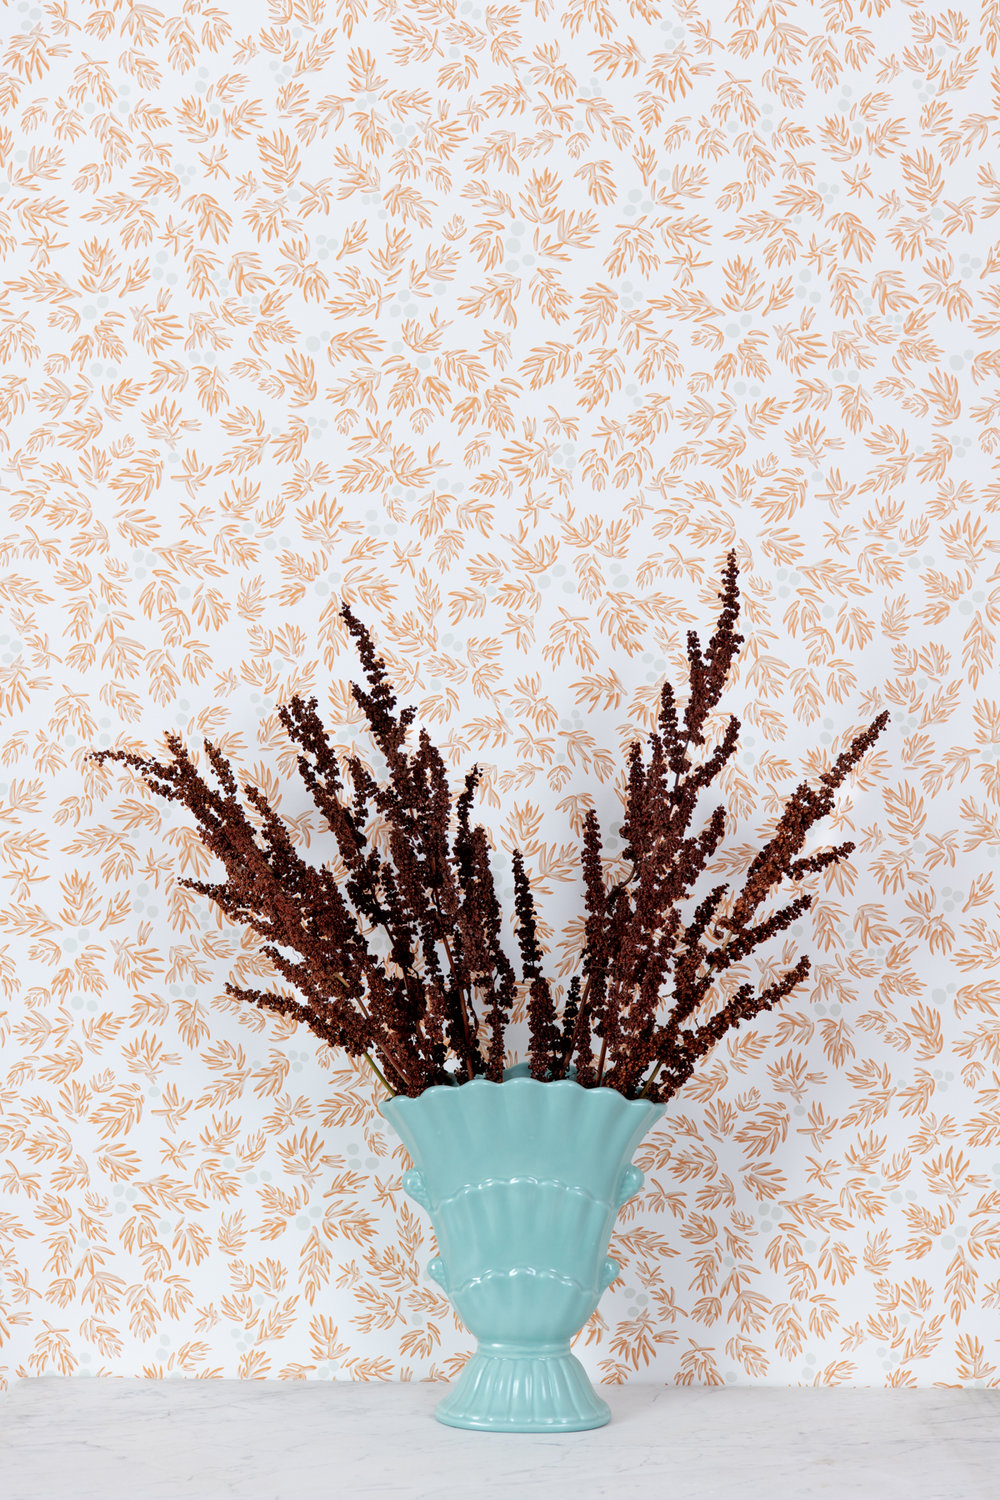 Kate Golding Juniper (Winter) wallpaper // Modern wallcoverings and interior decor.